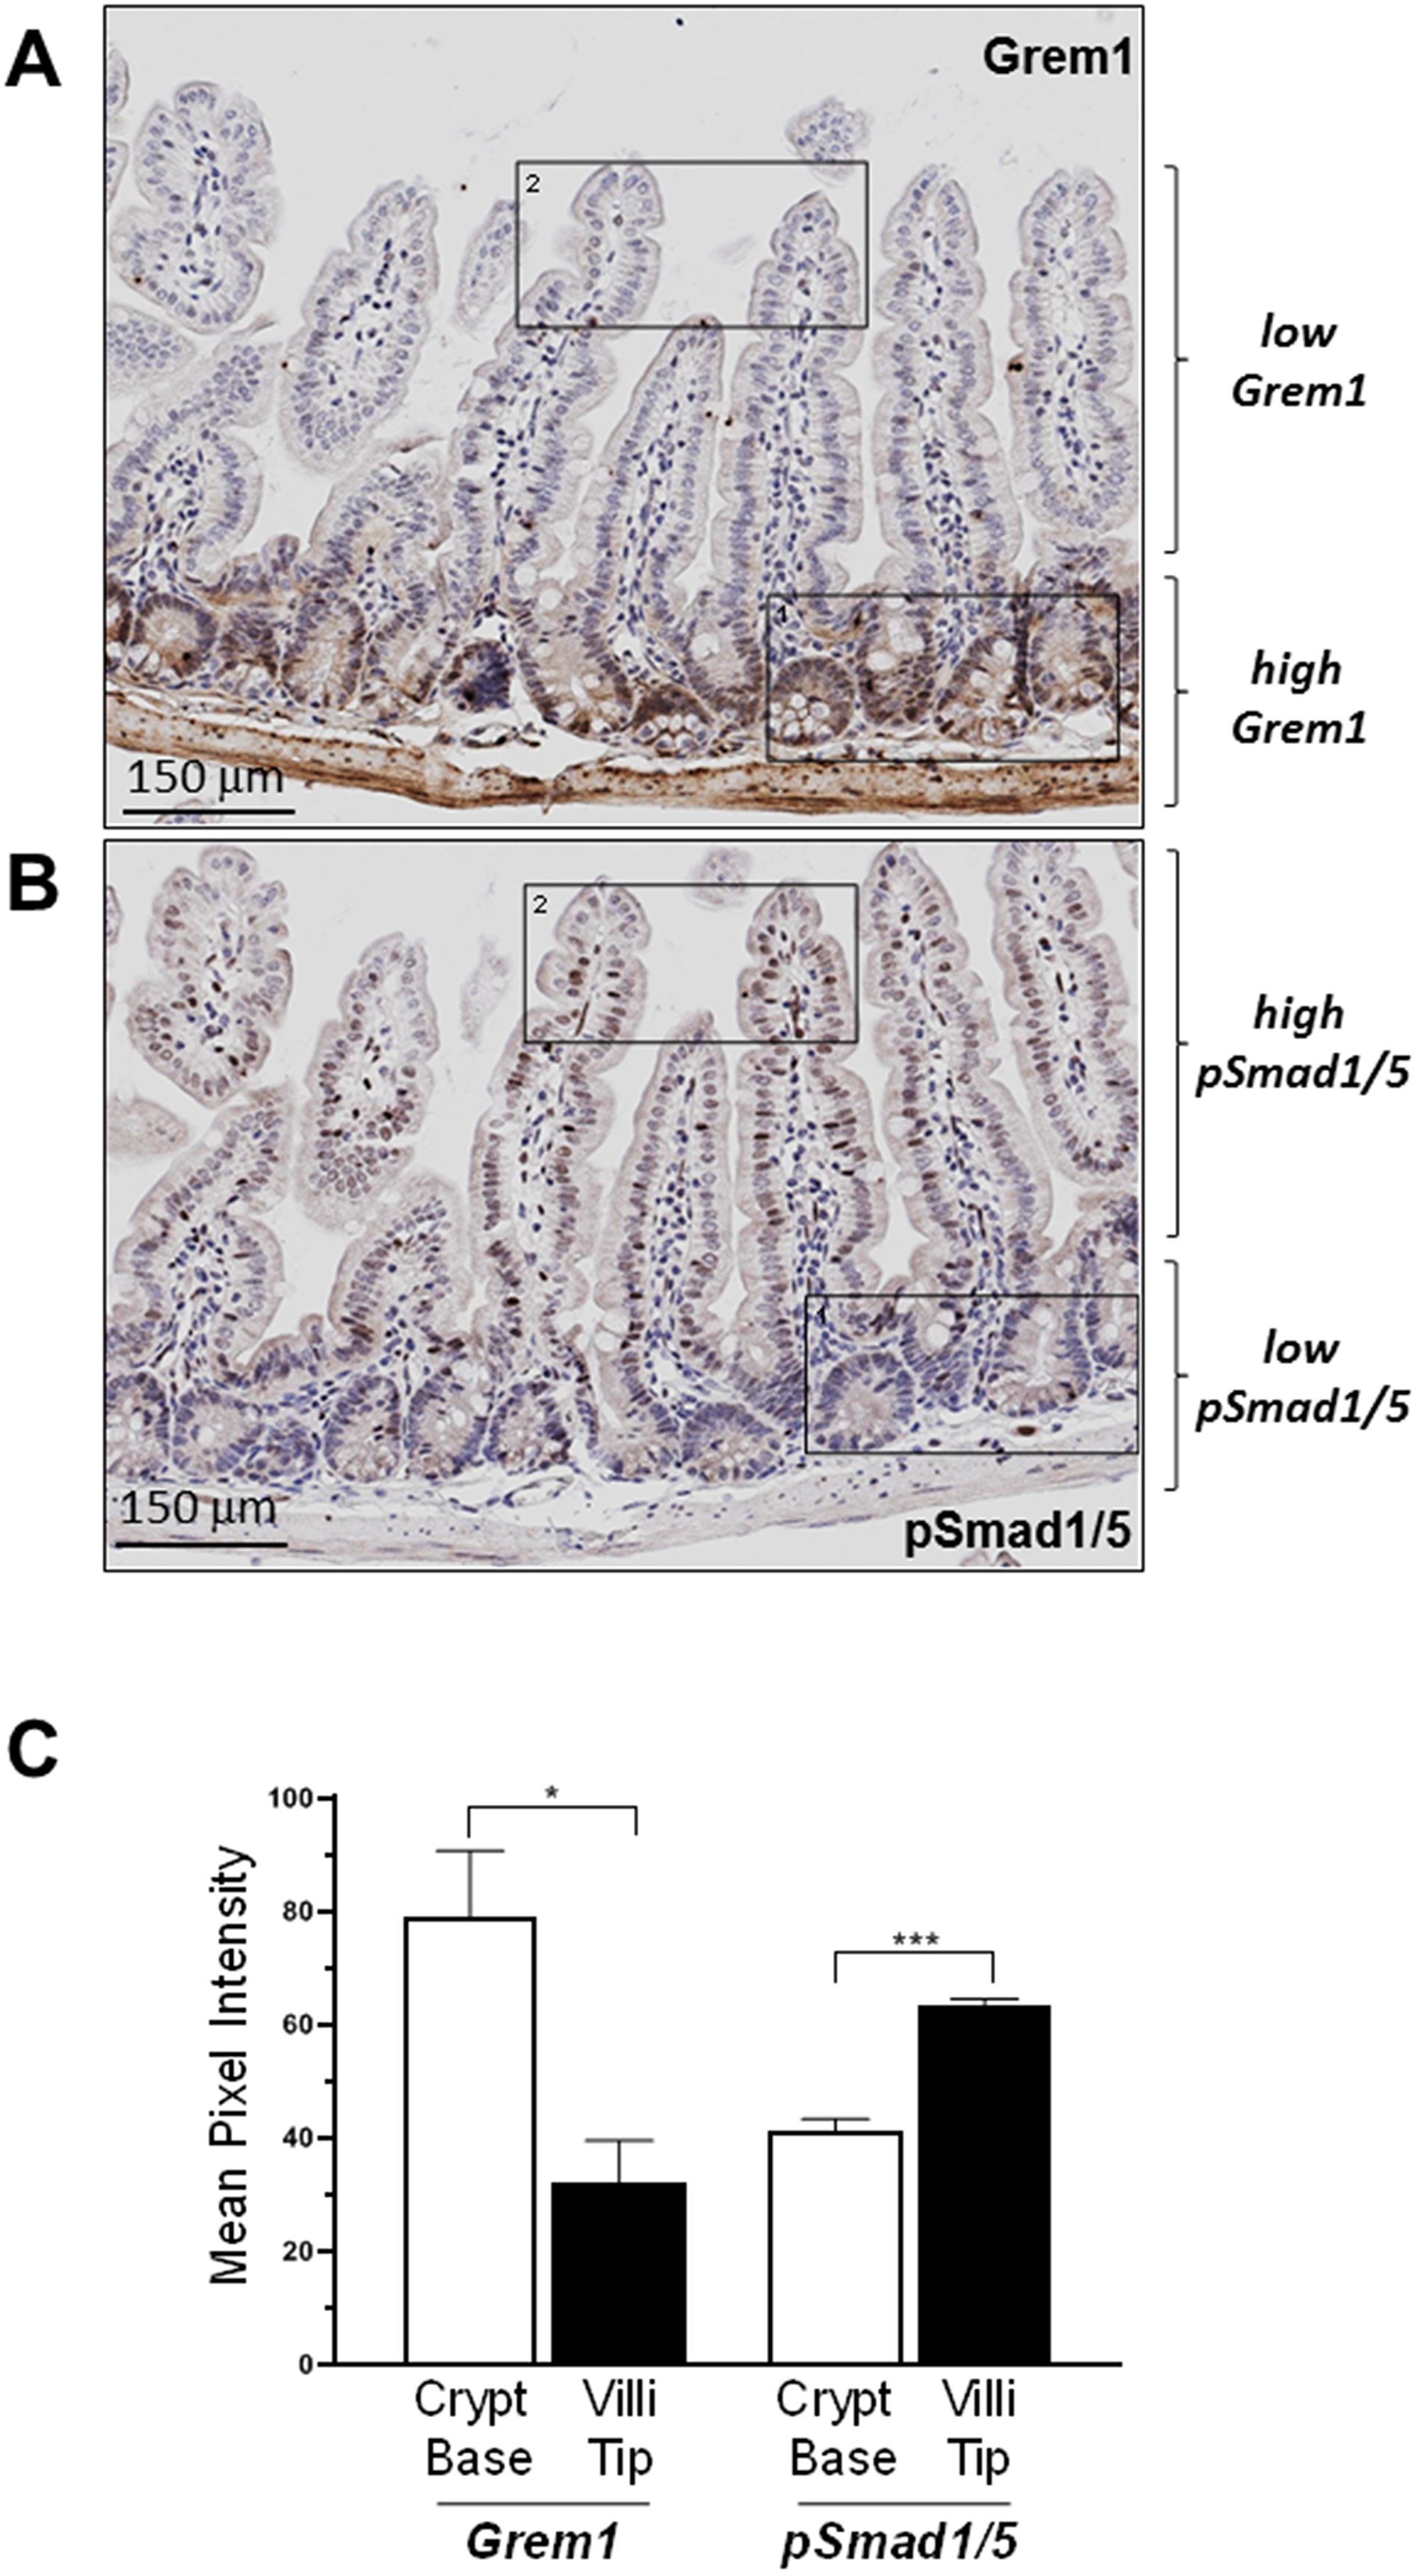 Inverse relationship between expression of Grem1 protein and pSmad1/5 staining in mouse intestine.